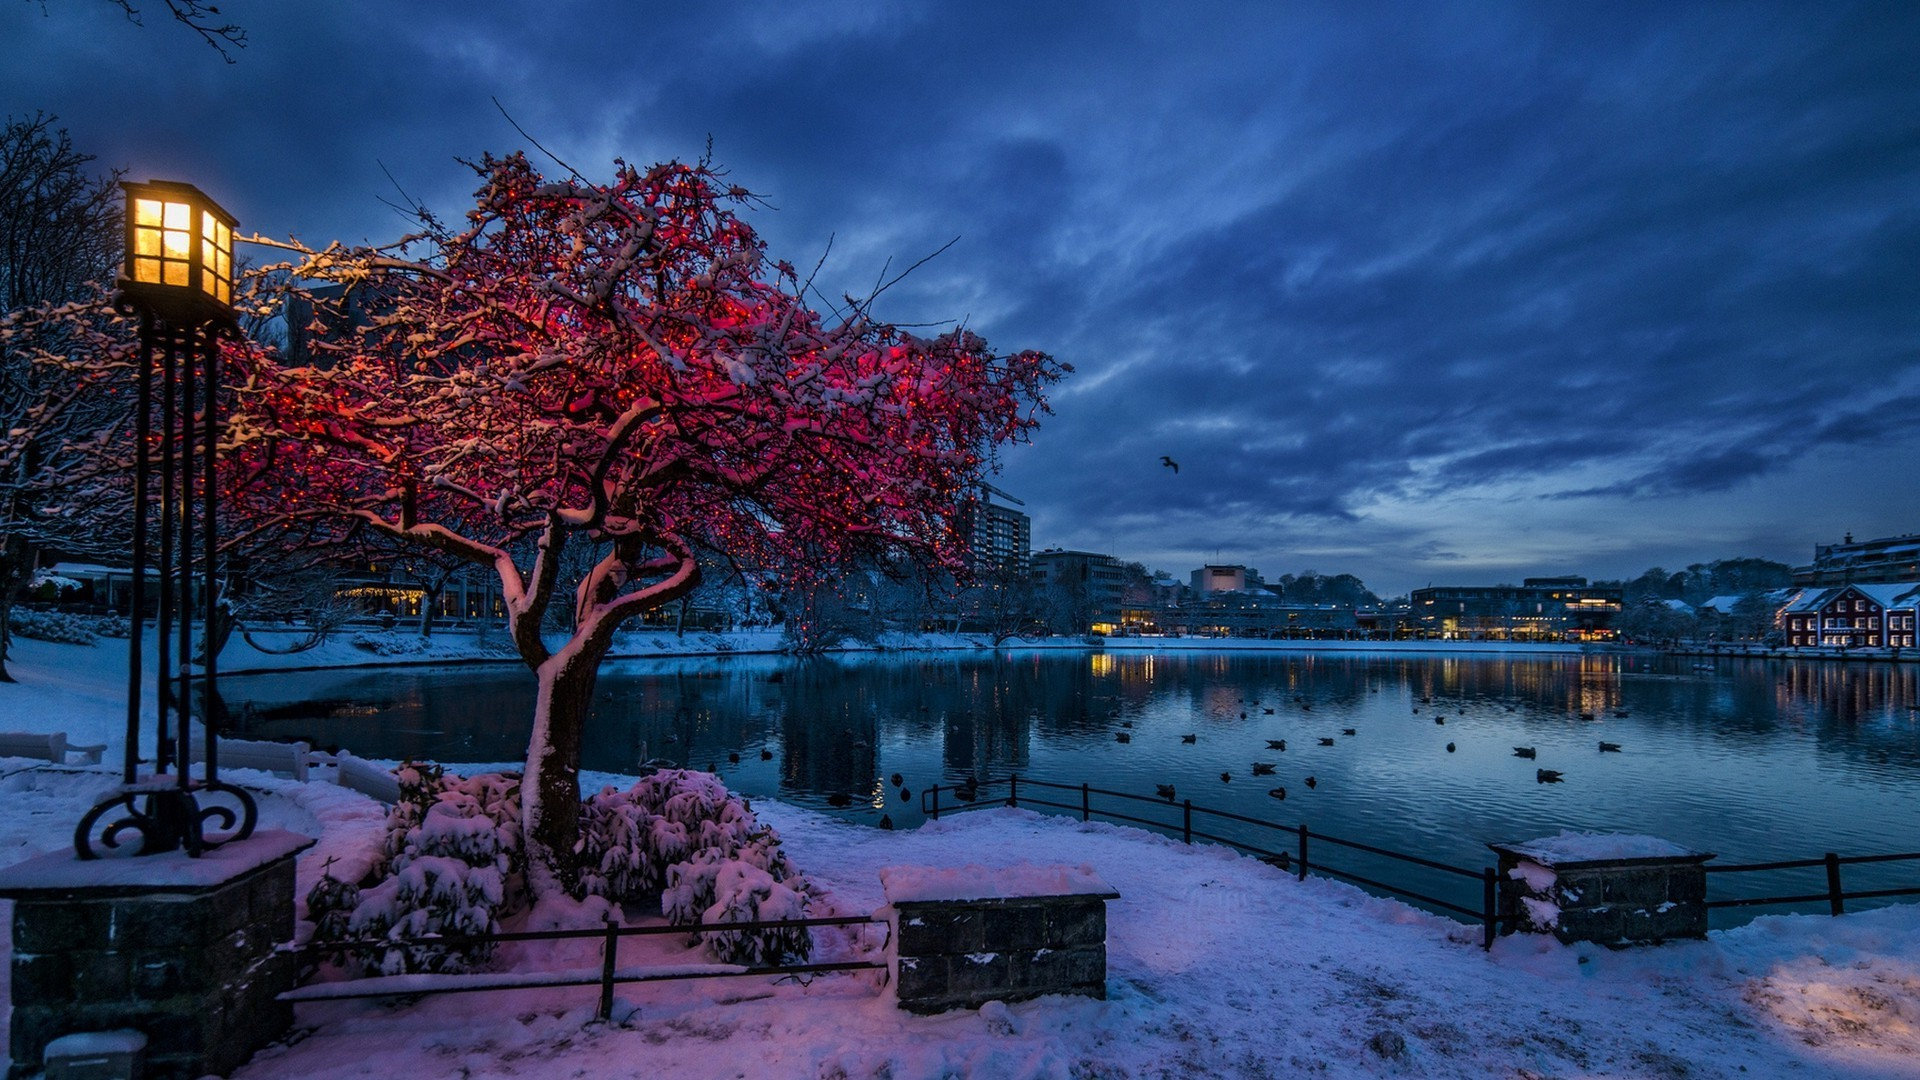 nature, Trees, City, Cityscape, Norway, Evening, Winter, Snow, Lights,  Water, Lake, Clouds, Branch, House, Reflection, Birds, Building, Lamp  Wallpapers HD …